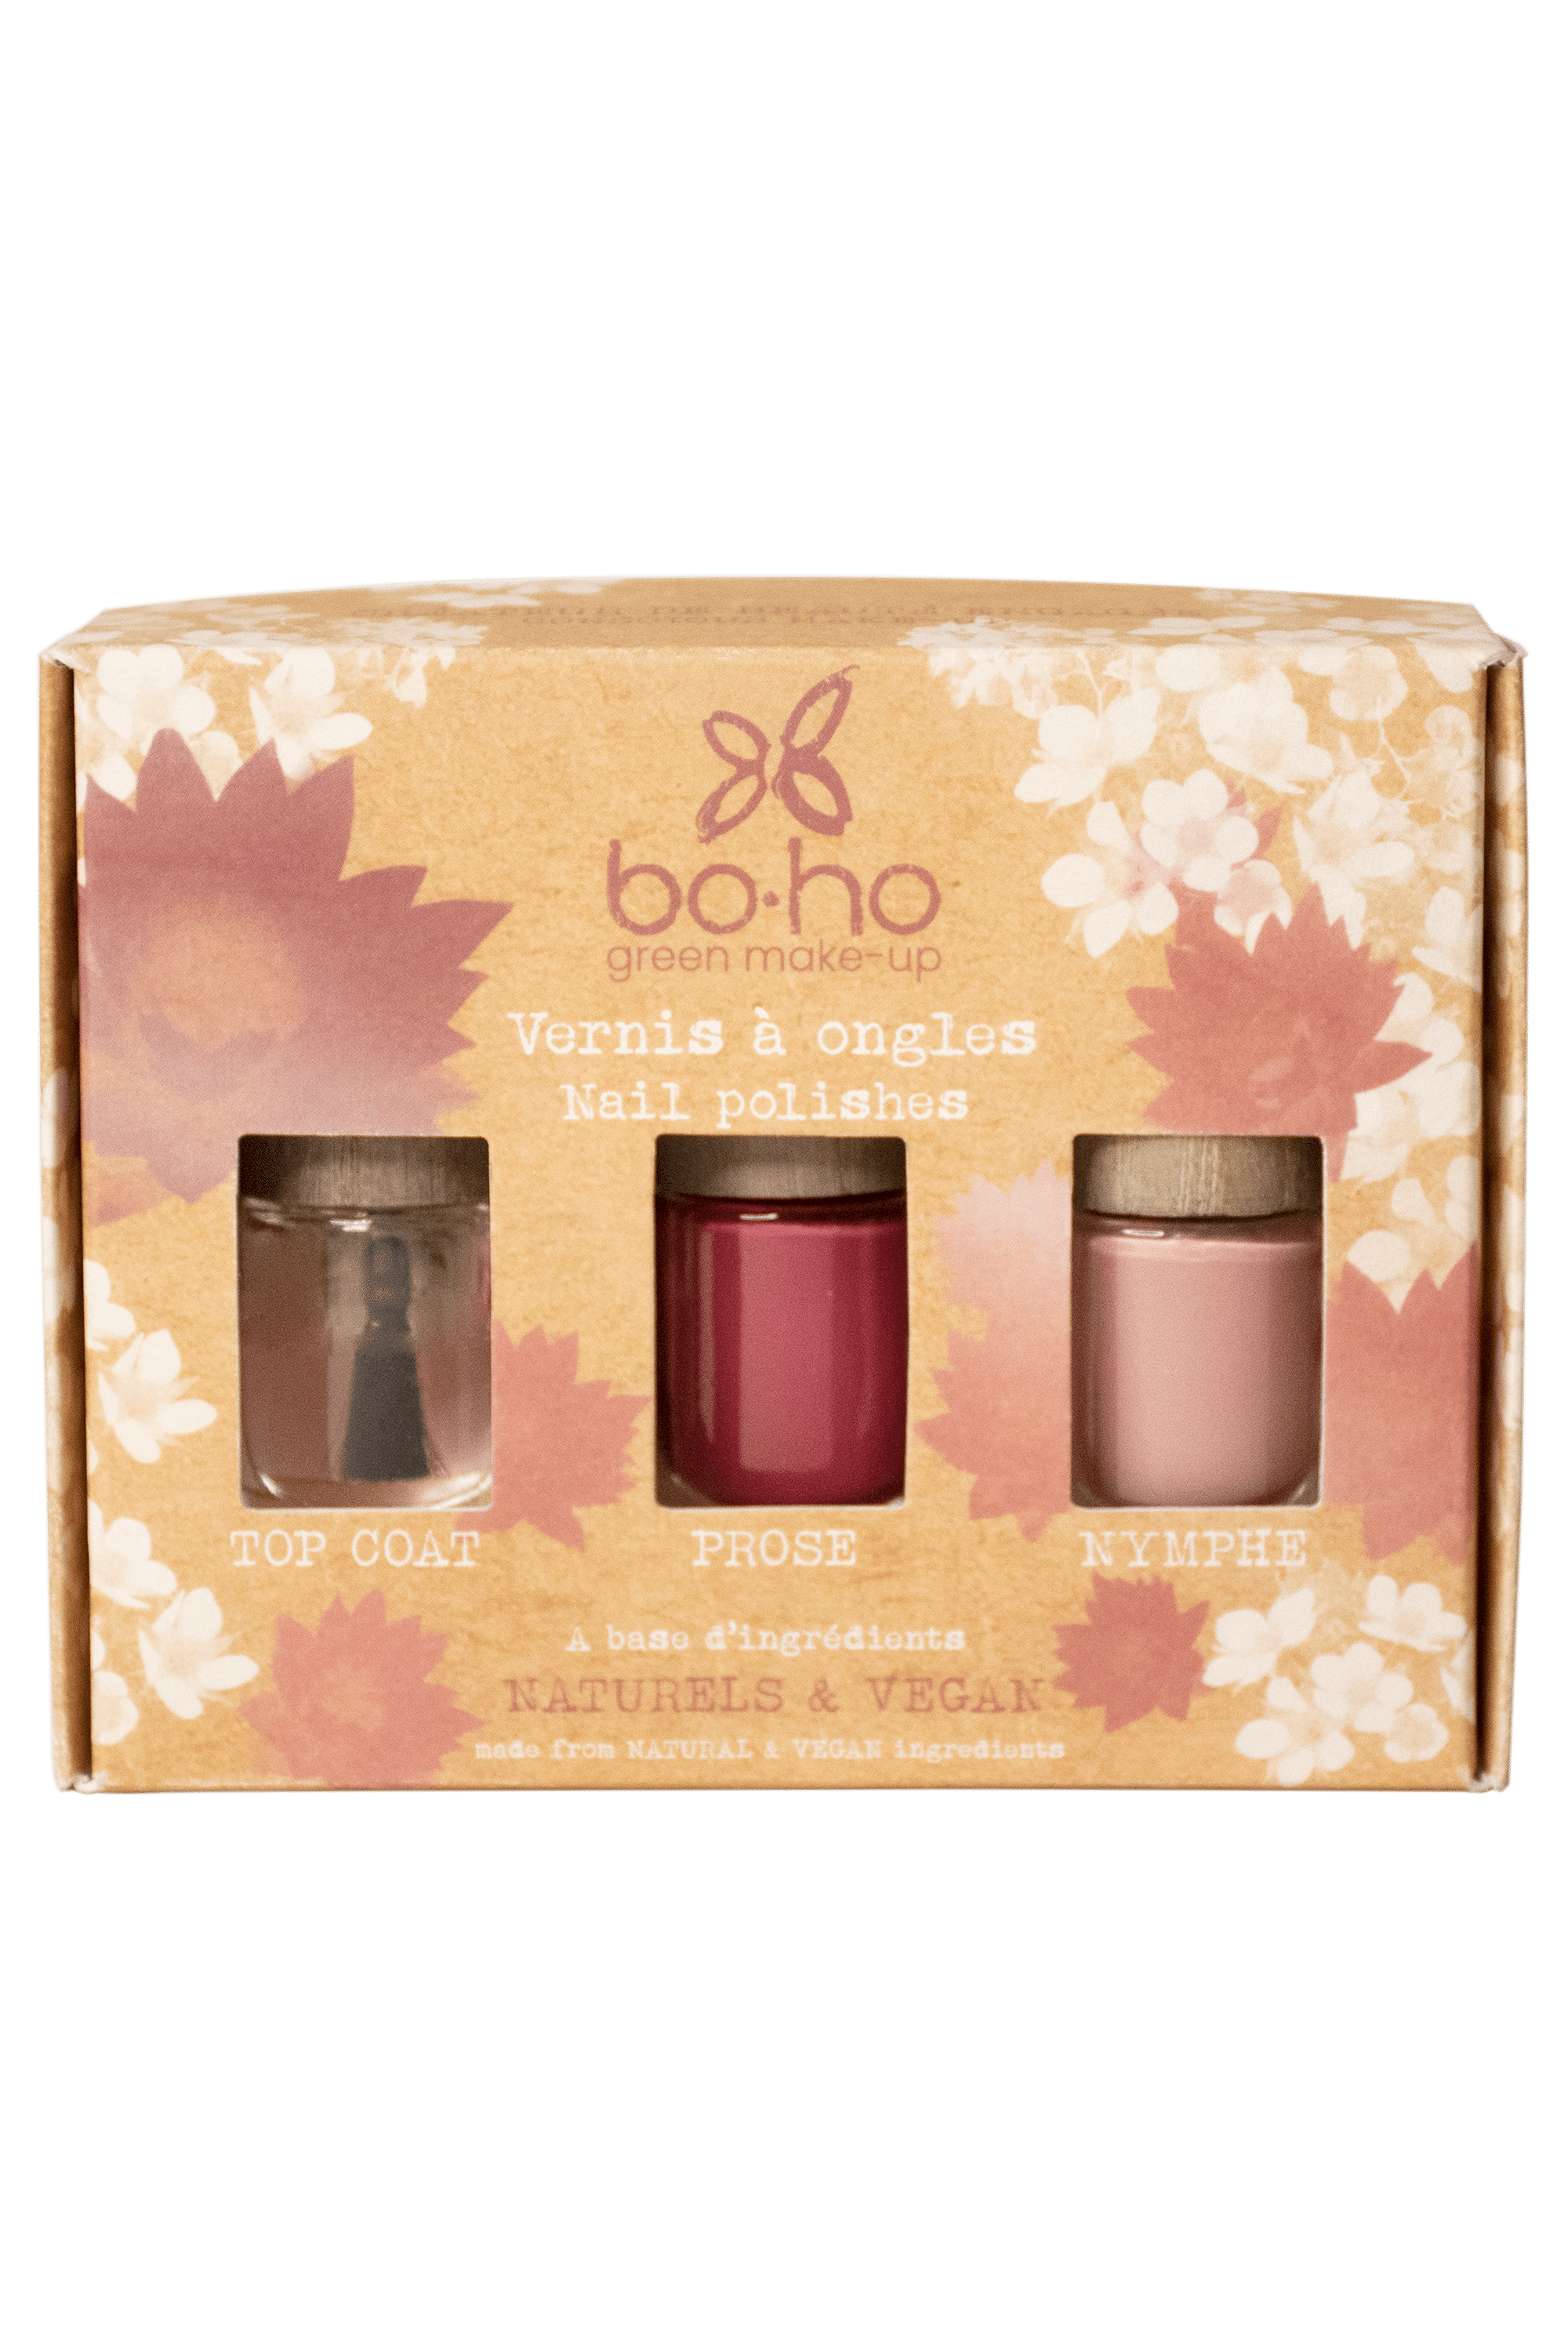 Blissim : Boho - Coffret de vernis Octobre Rose - Coffret de vernis Octobre Rose